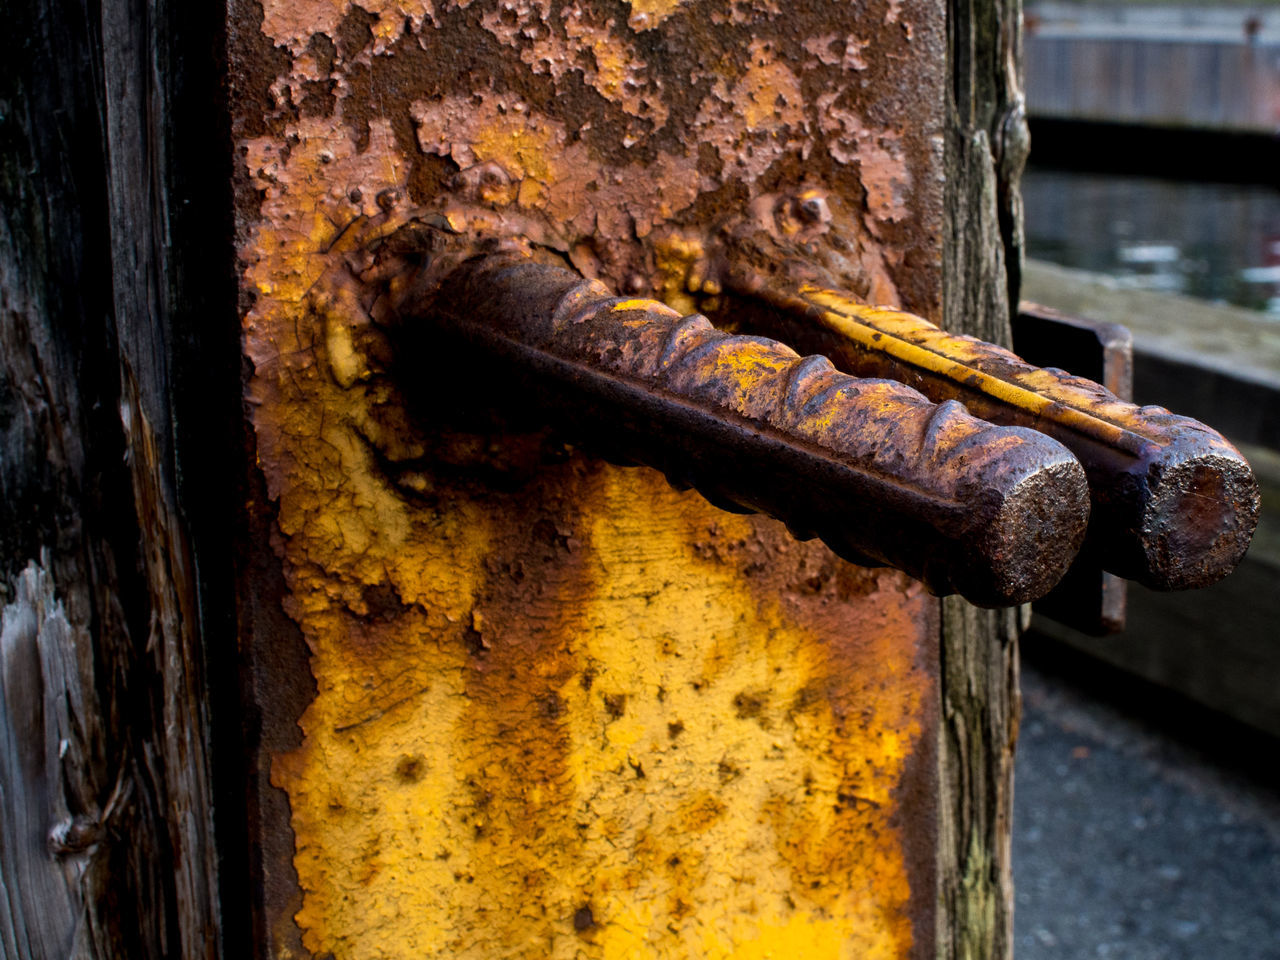 Bad Condition Bolt Bolts Close-up Metal Obsolete Old Rough Bolts Rough Texture Run-down Rusty Rusty Bolts Rustygoodness Textured  Weathered